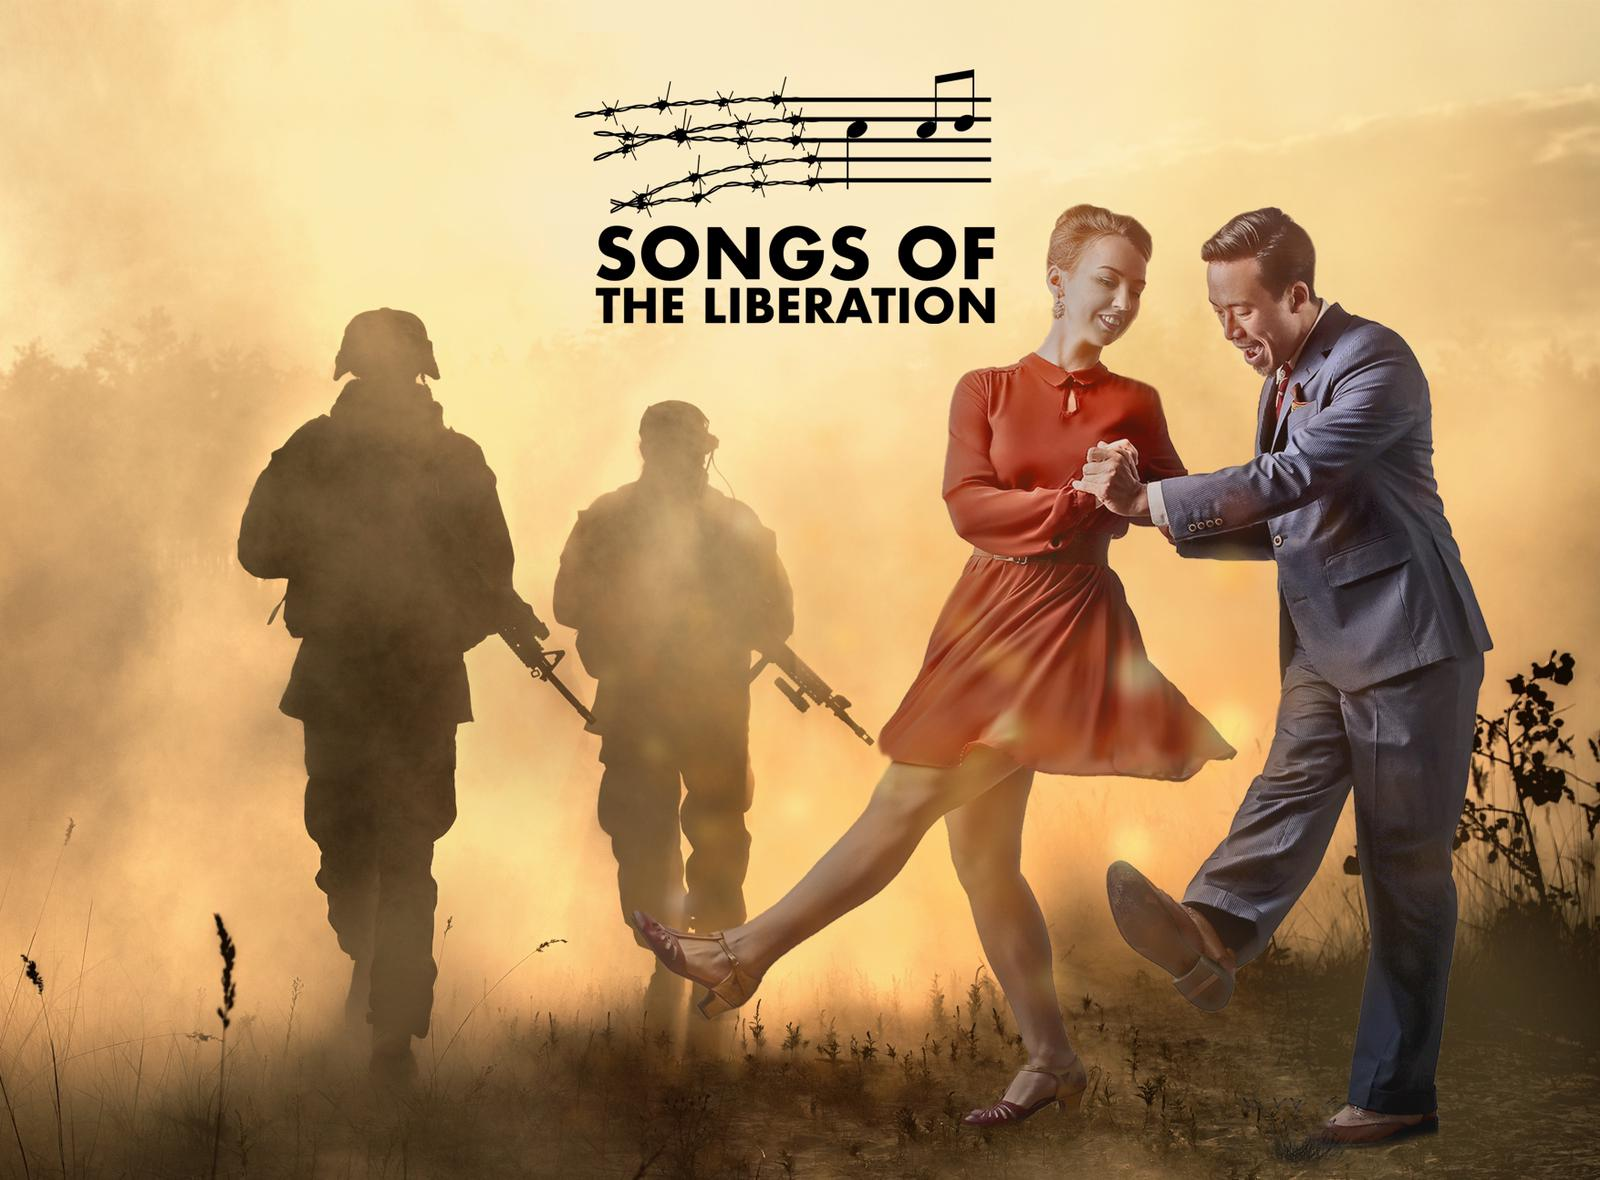 Songs of the Liberation